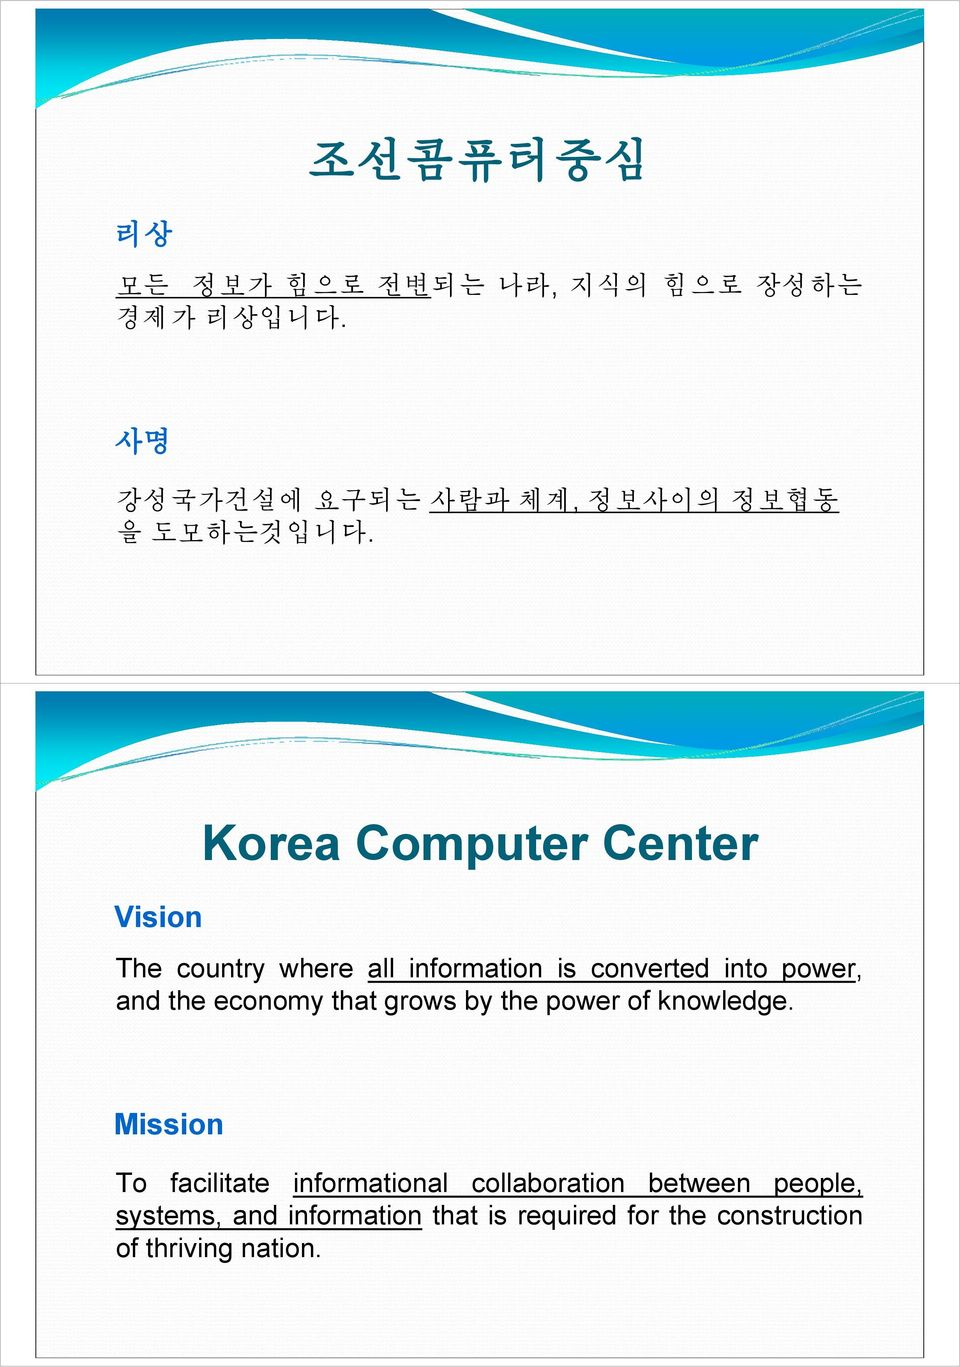 Vision Korea Computer Center The country where all information is converted into power, and the